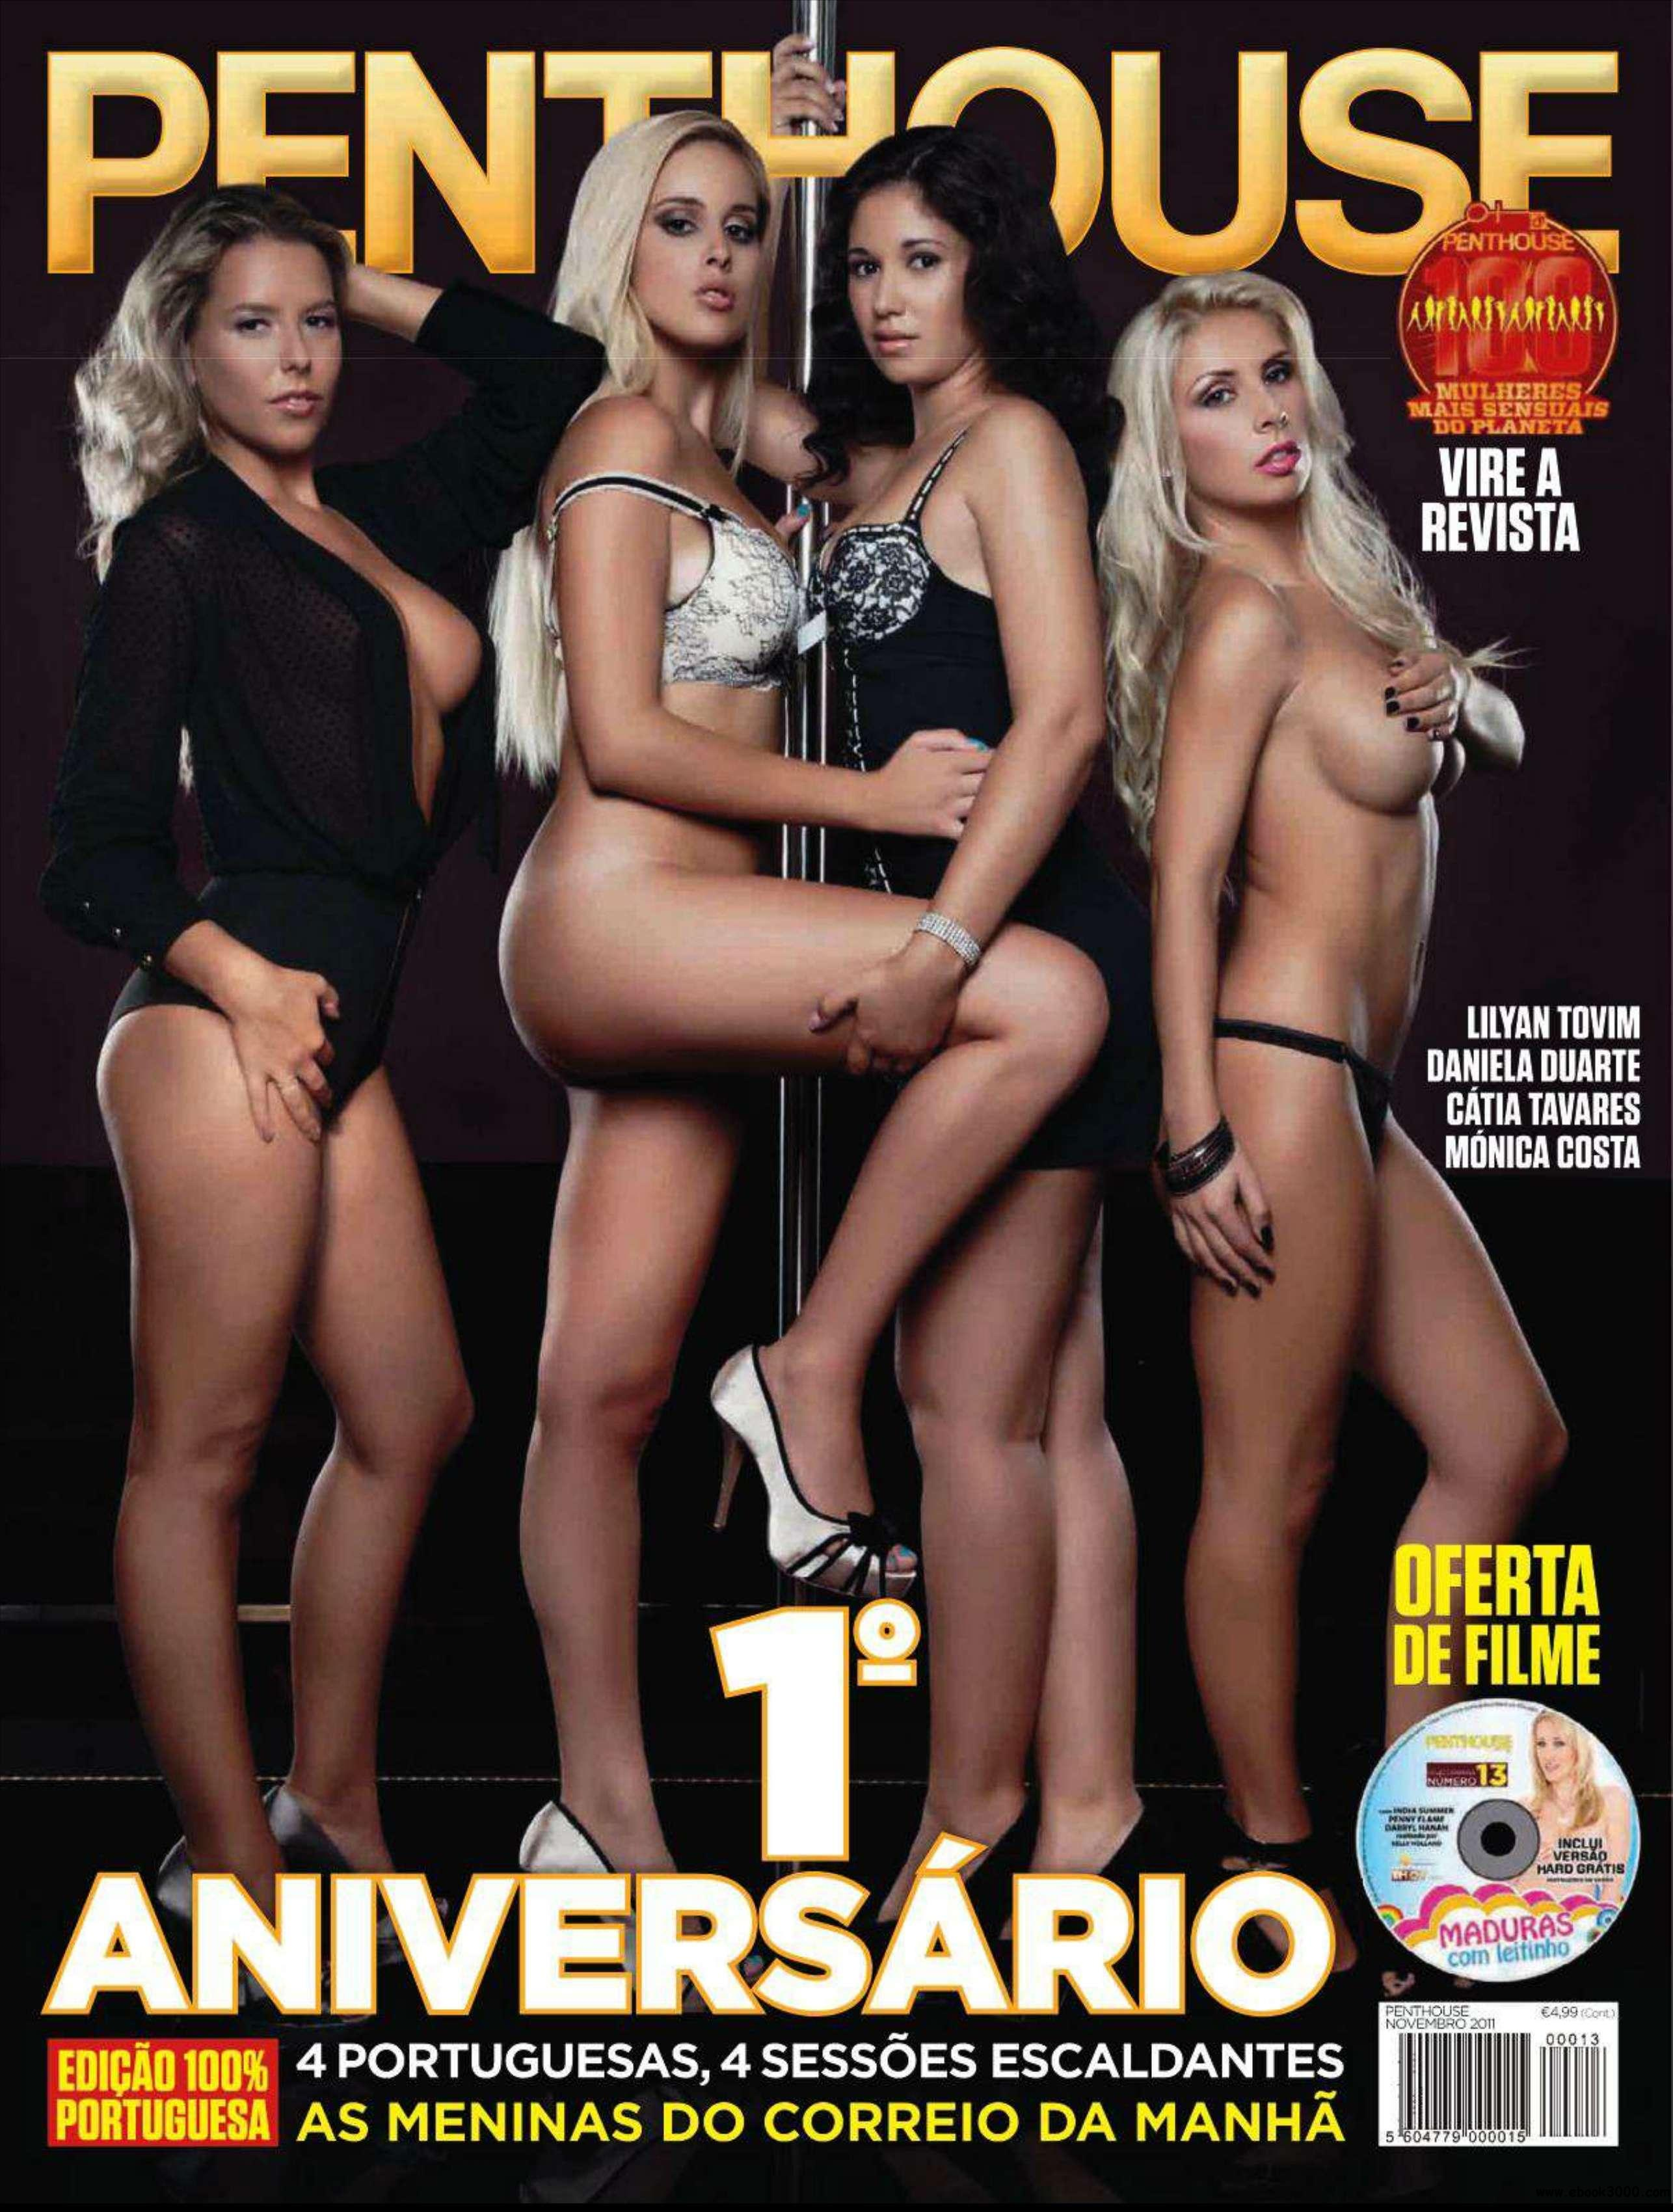 Penthouse Portugal - November 2011 free download